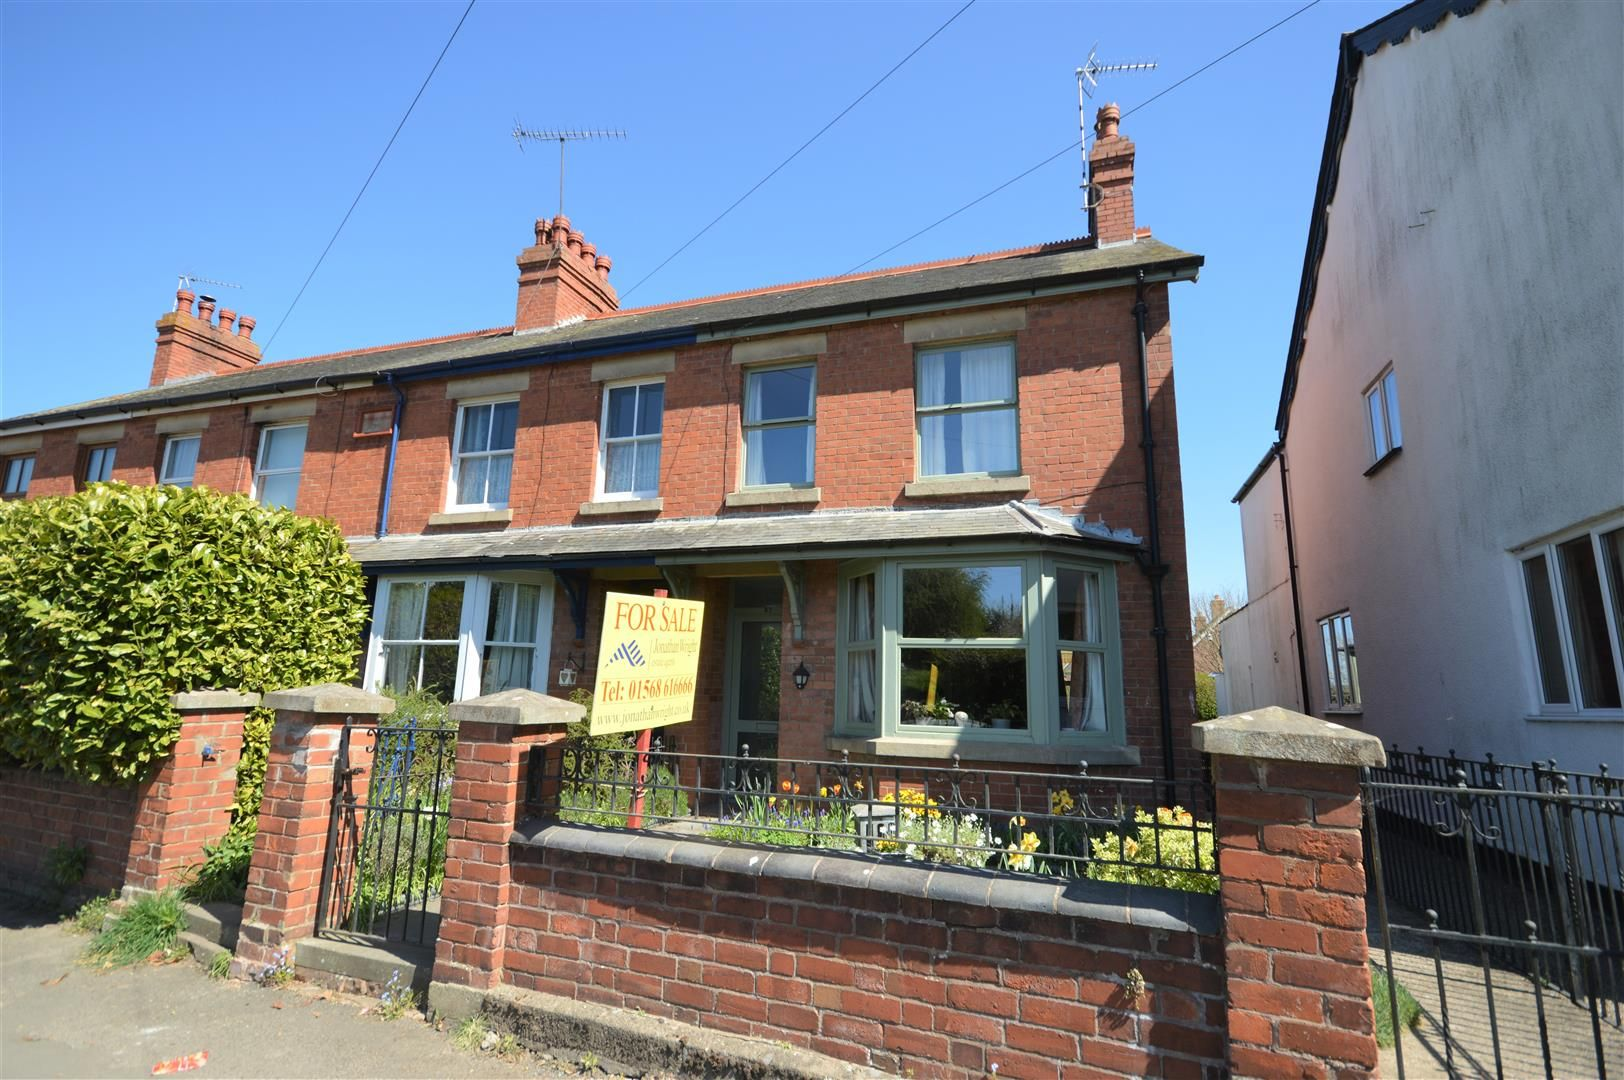 3 bed end of terrace for sale in Leominster, HR6